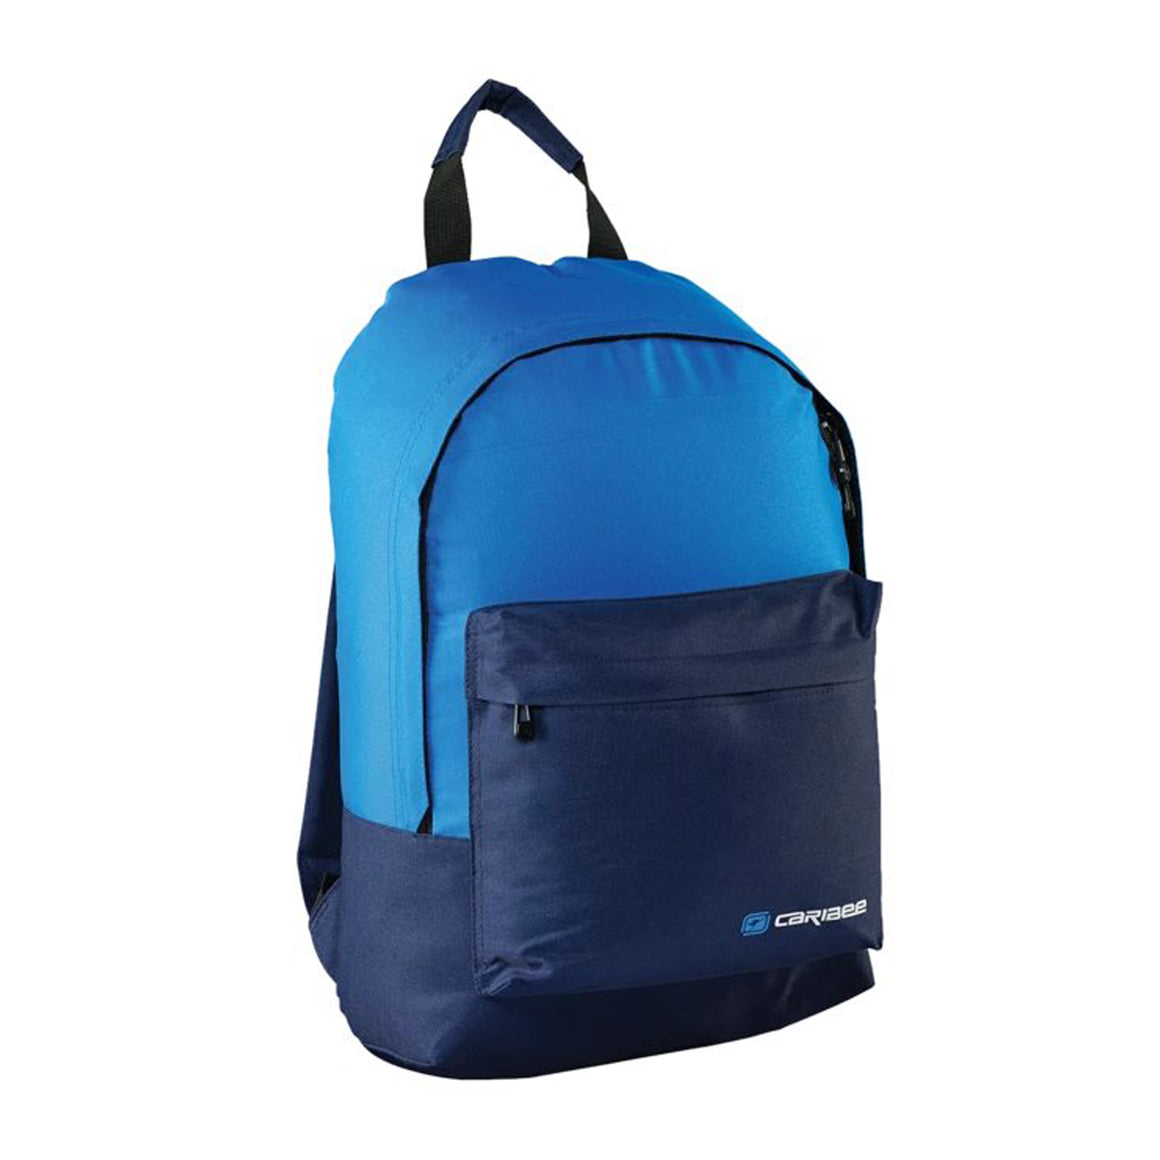 Campus Backpack in Navy & Blue